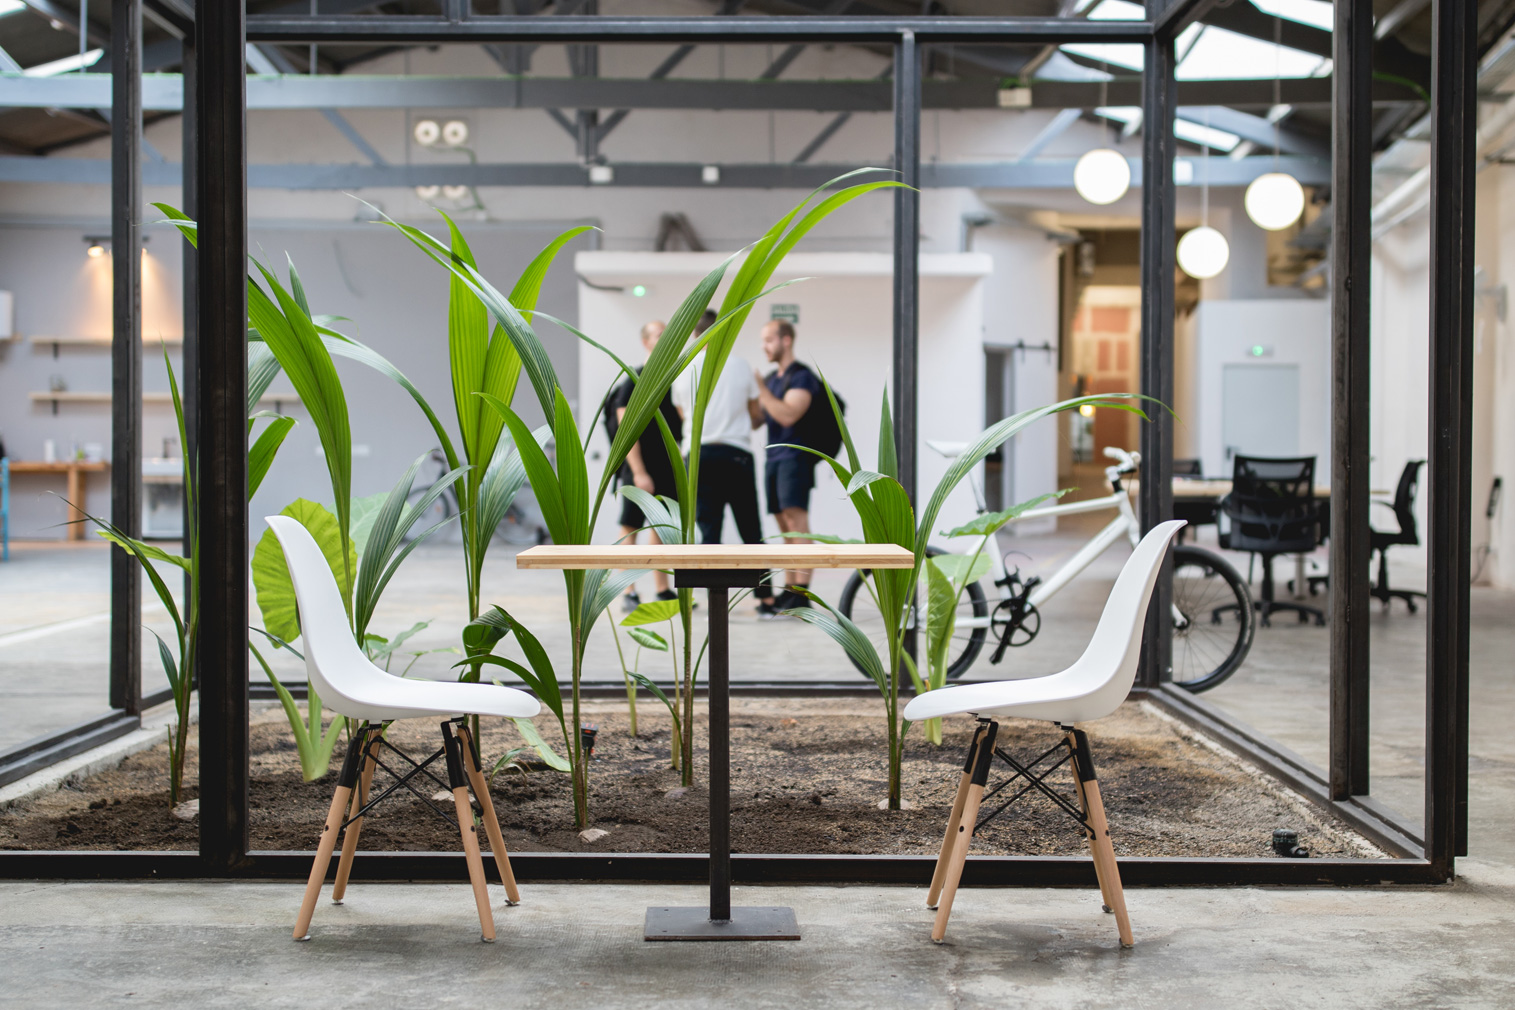 Cahoots coworking space in Barcelona